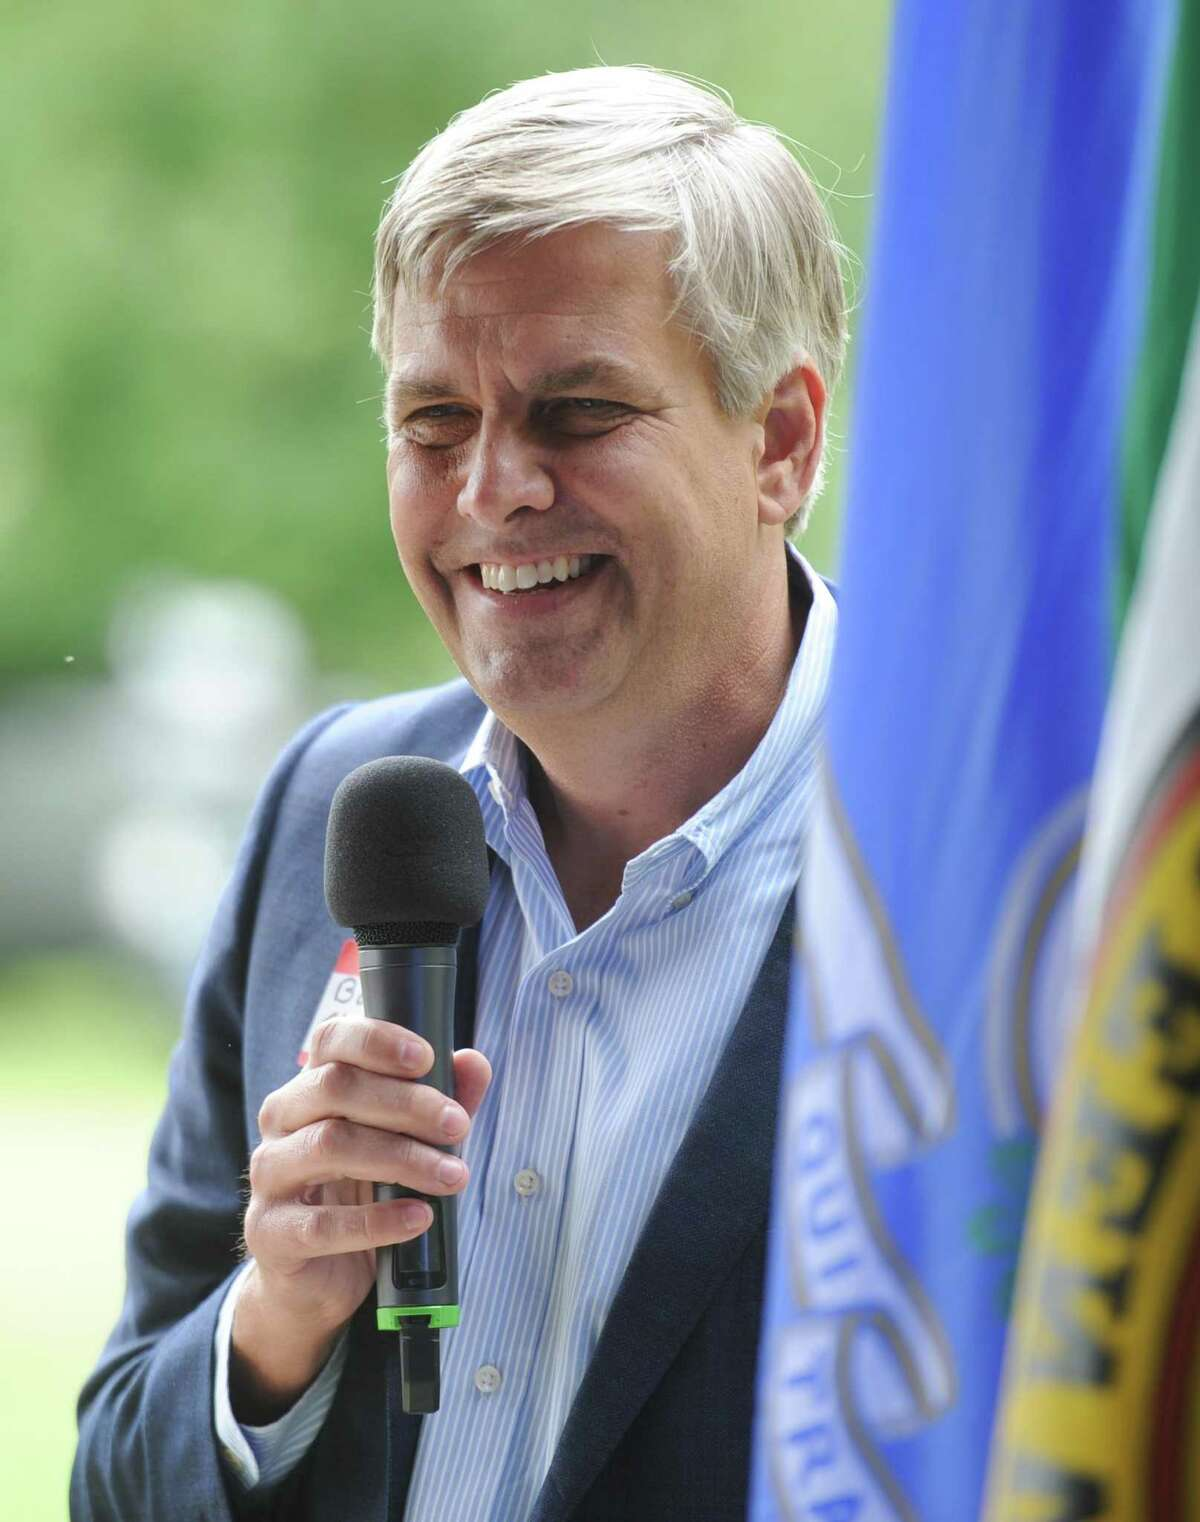 Republican gubernatorial candidate Bob Stefanowski speaks at the 87th annual Cos Cob Republican Clambake at Greenwich Point Park in Old Greenwich, Conn. Sunday, Sept. 23, 2018. Republican leaders got together to drum up support for gubernatorial candidate Bob Stefanowski and other GOP candidates for state and local government positions.